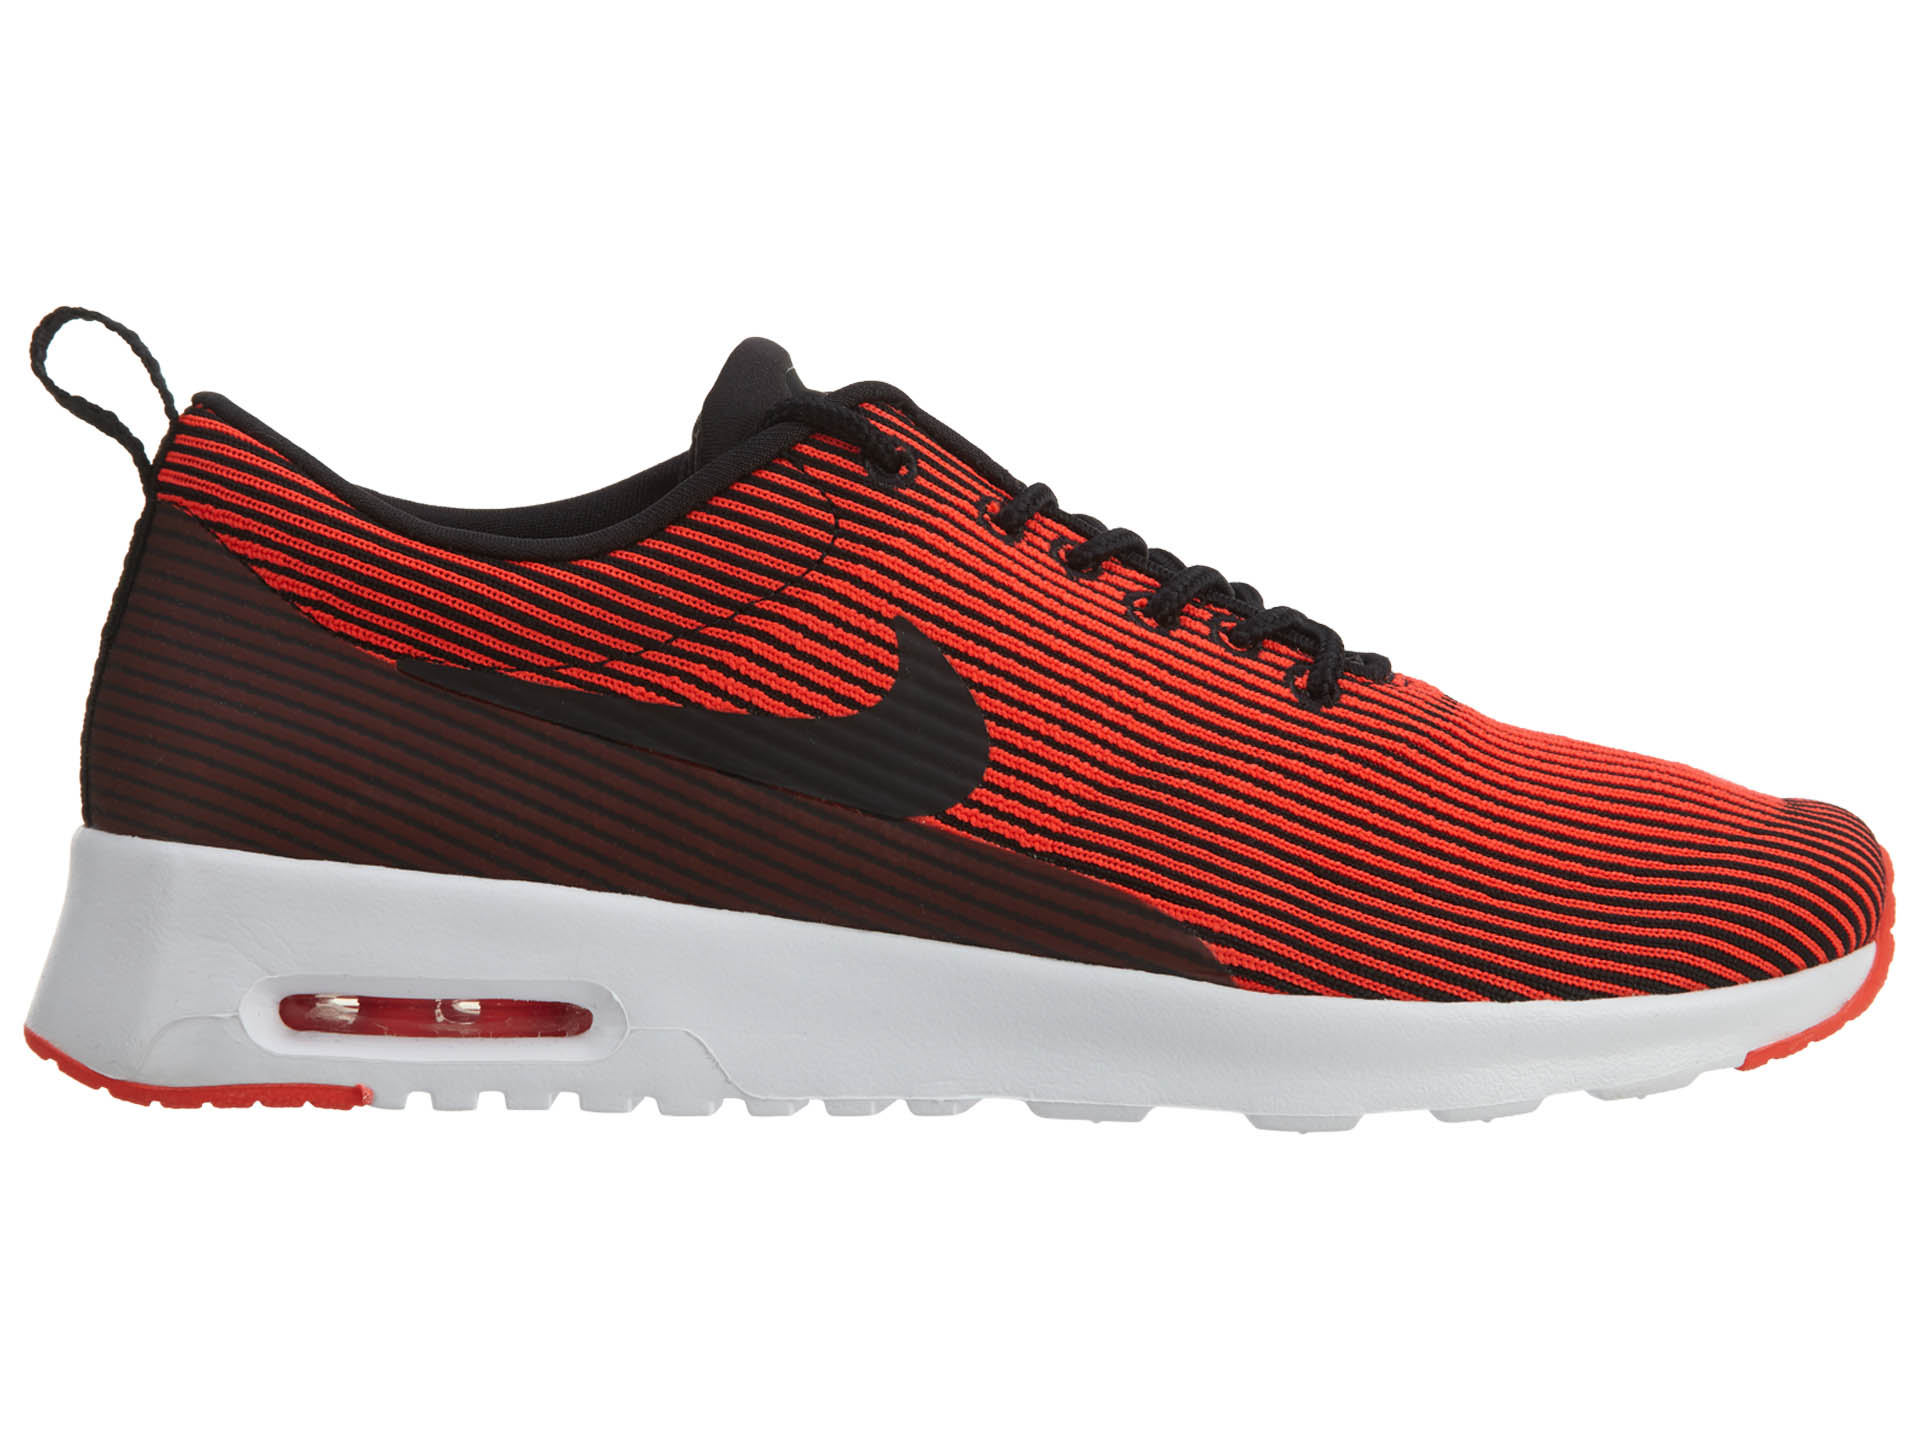 Air Max Thea Kjcrd Black Black (W) 718646 007